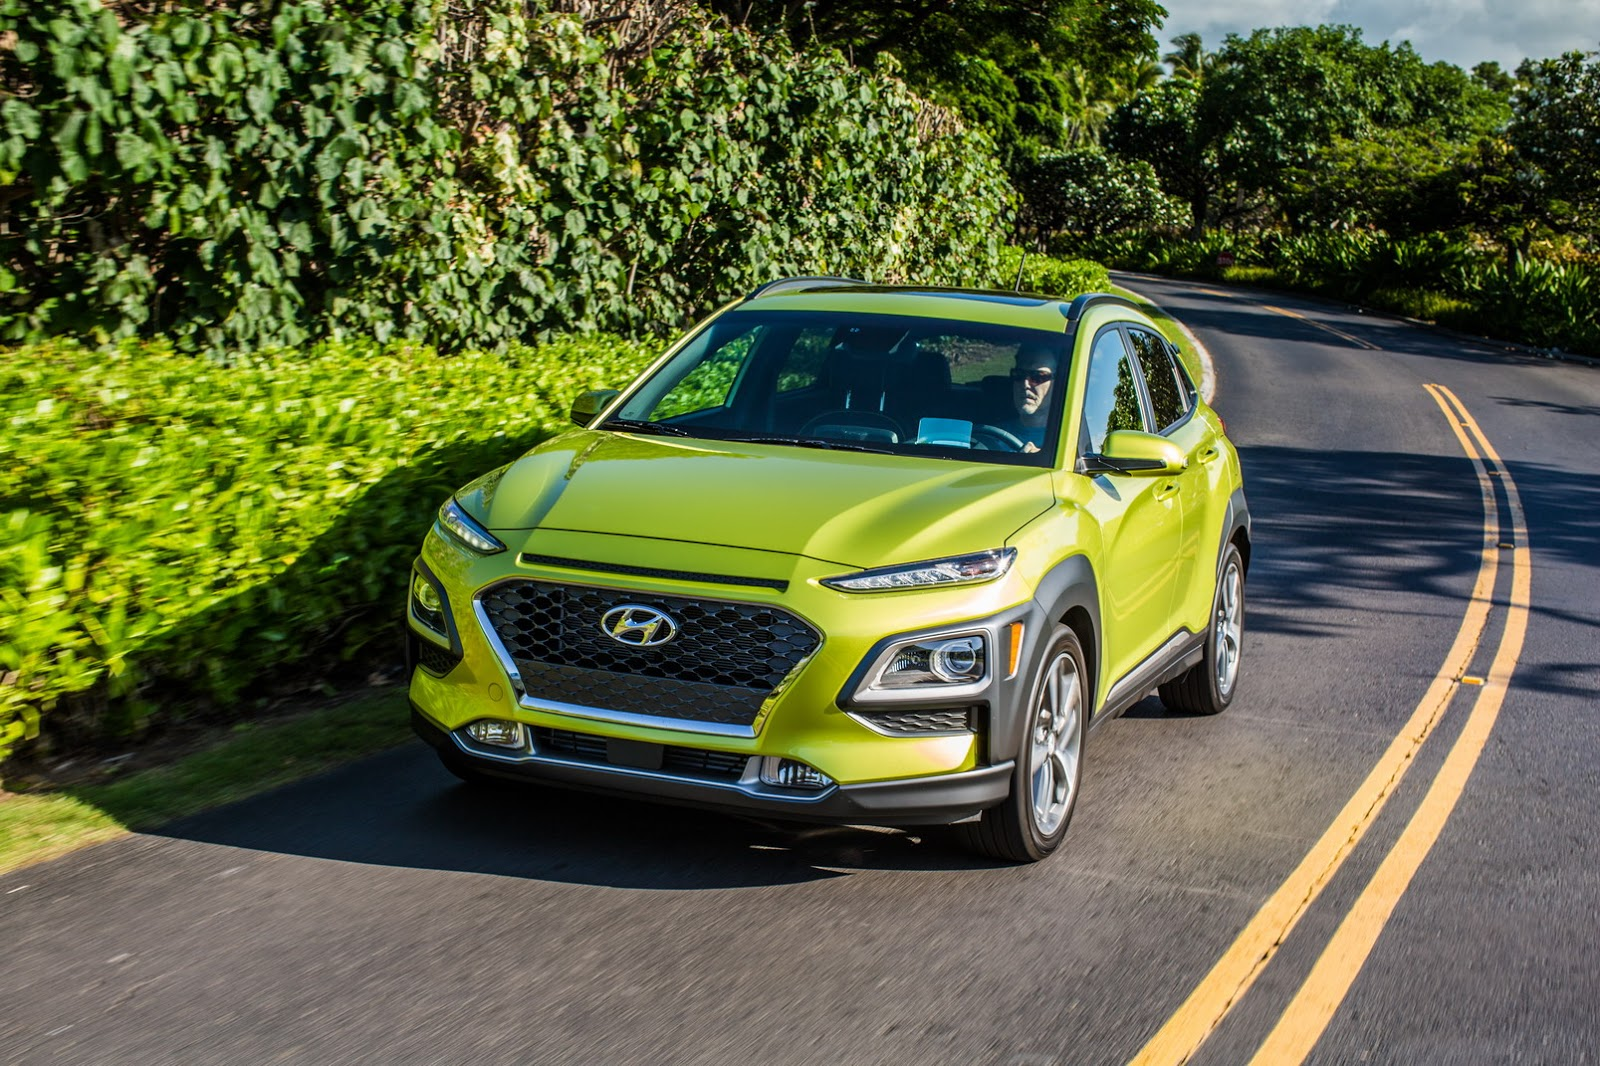 2018 hyundai kona wants to give nissan kicks a run for its. Black Bedroom Furniture Sets. Home Design Ideas